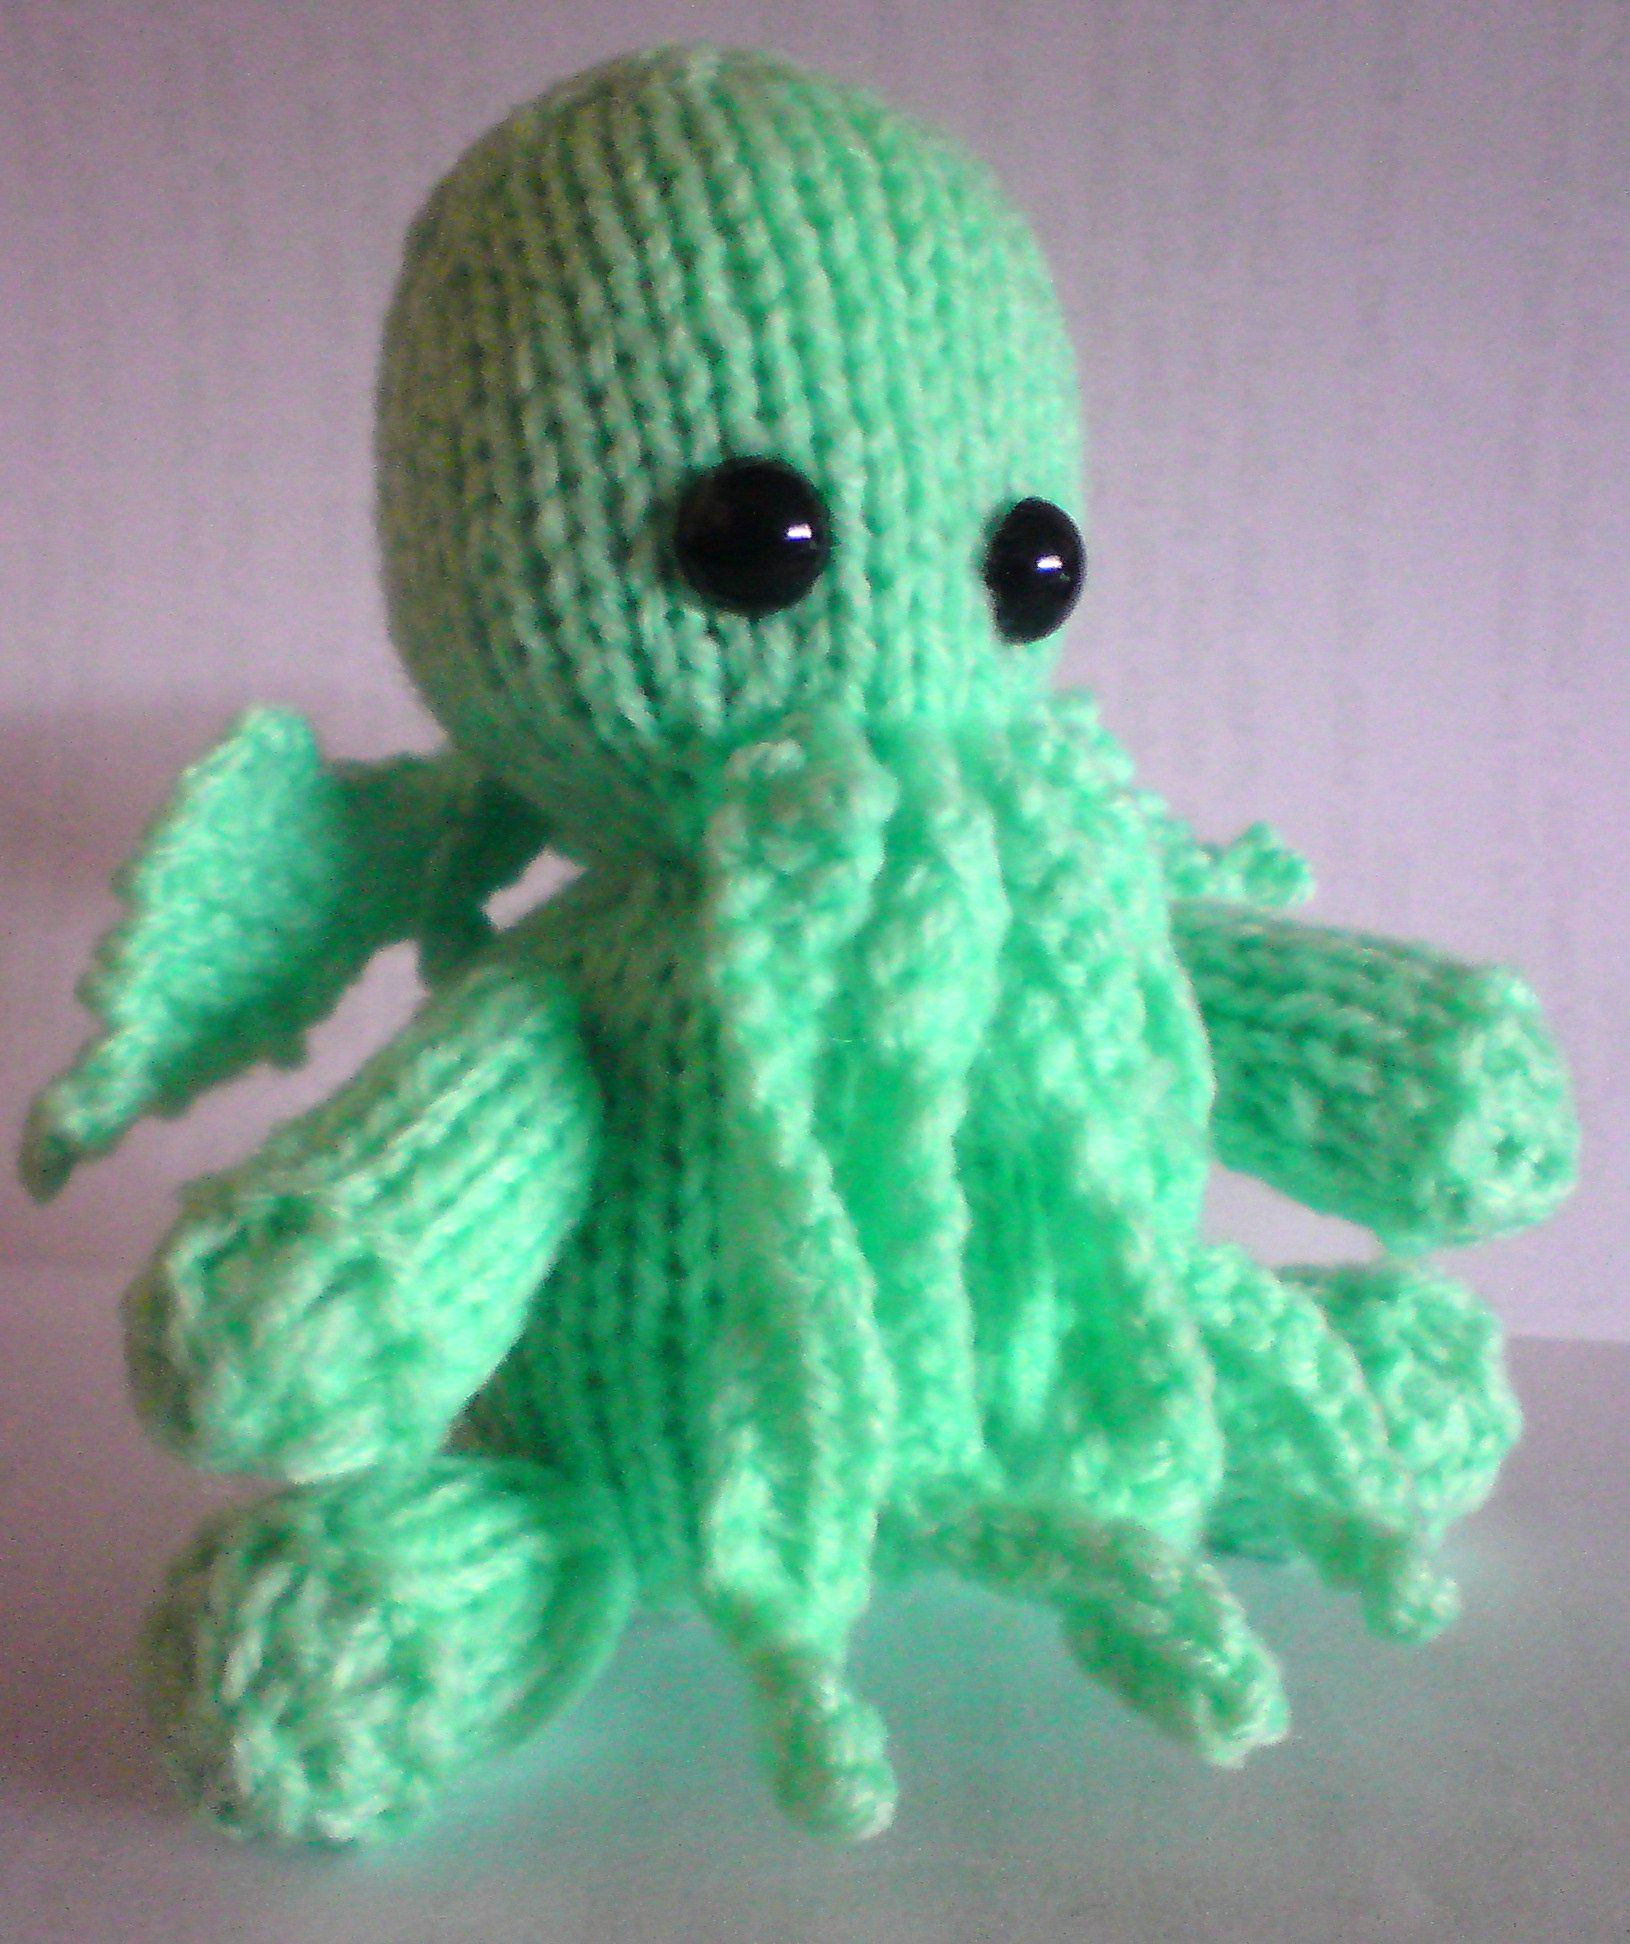 Baby cthulhu knitting pattern available to buy on ravelry yarn baby cthulhu knitting pattern available to buy on ravelry bankloansurffo Choice Image